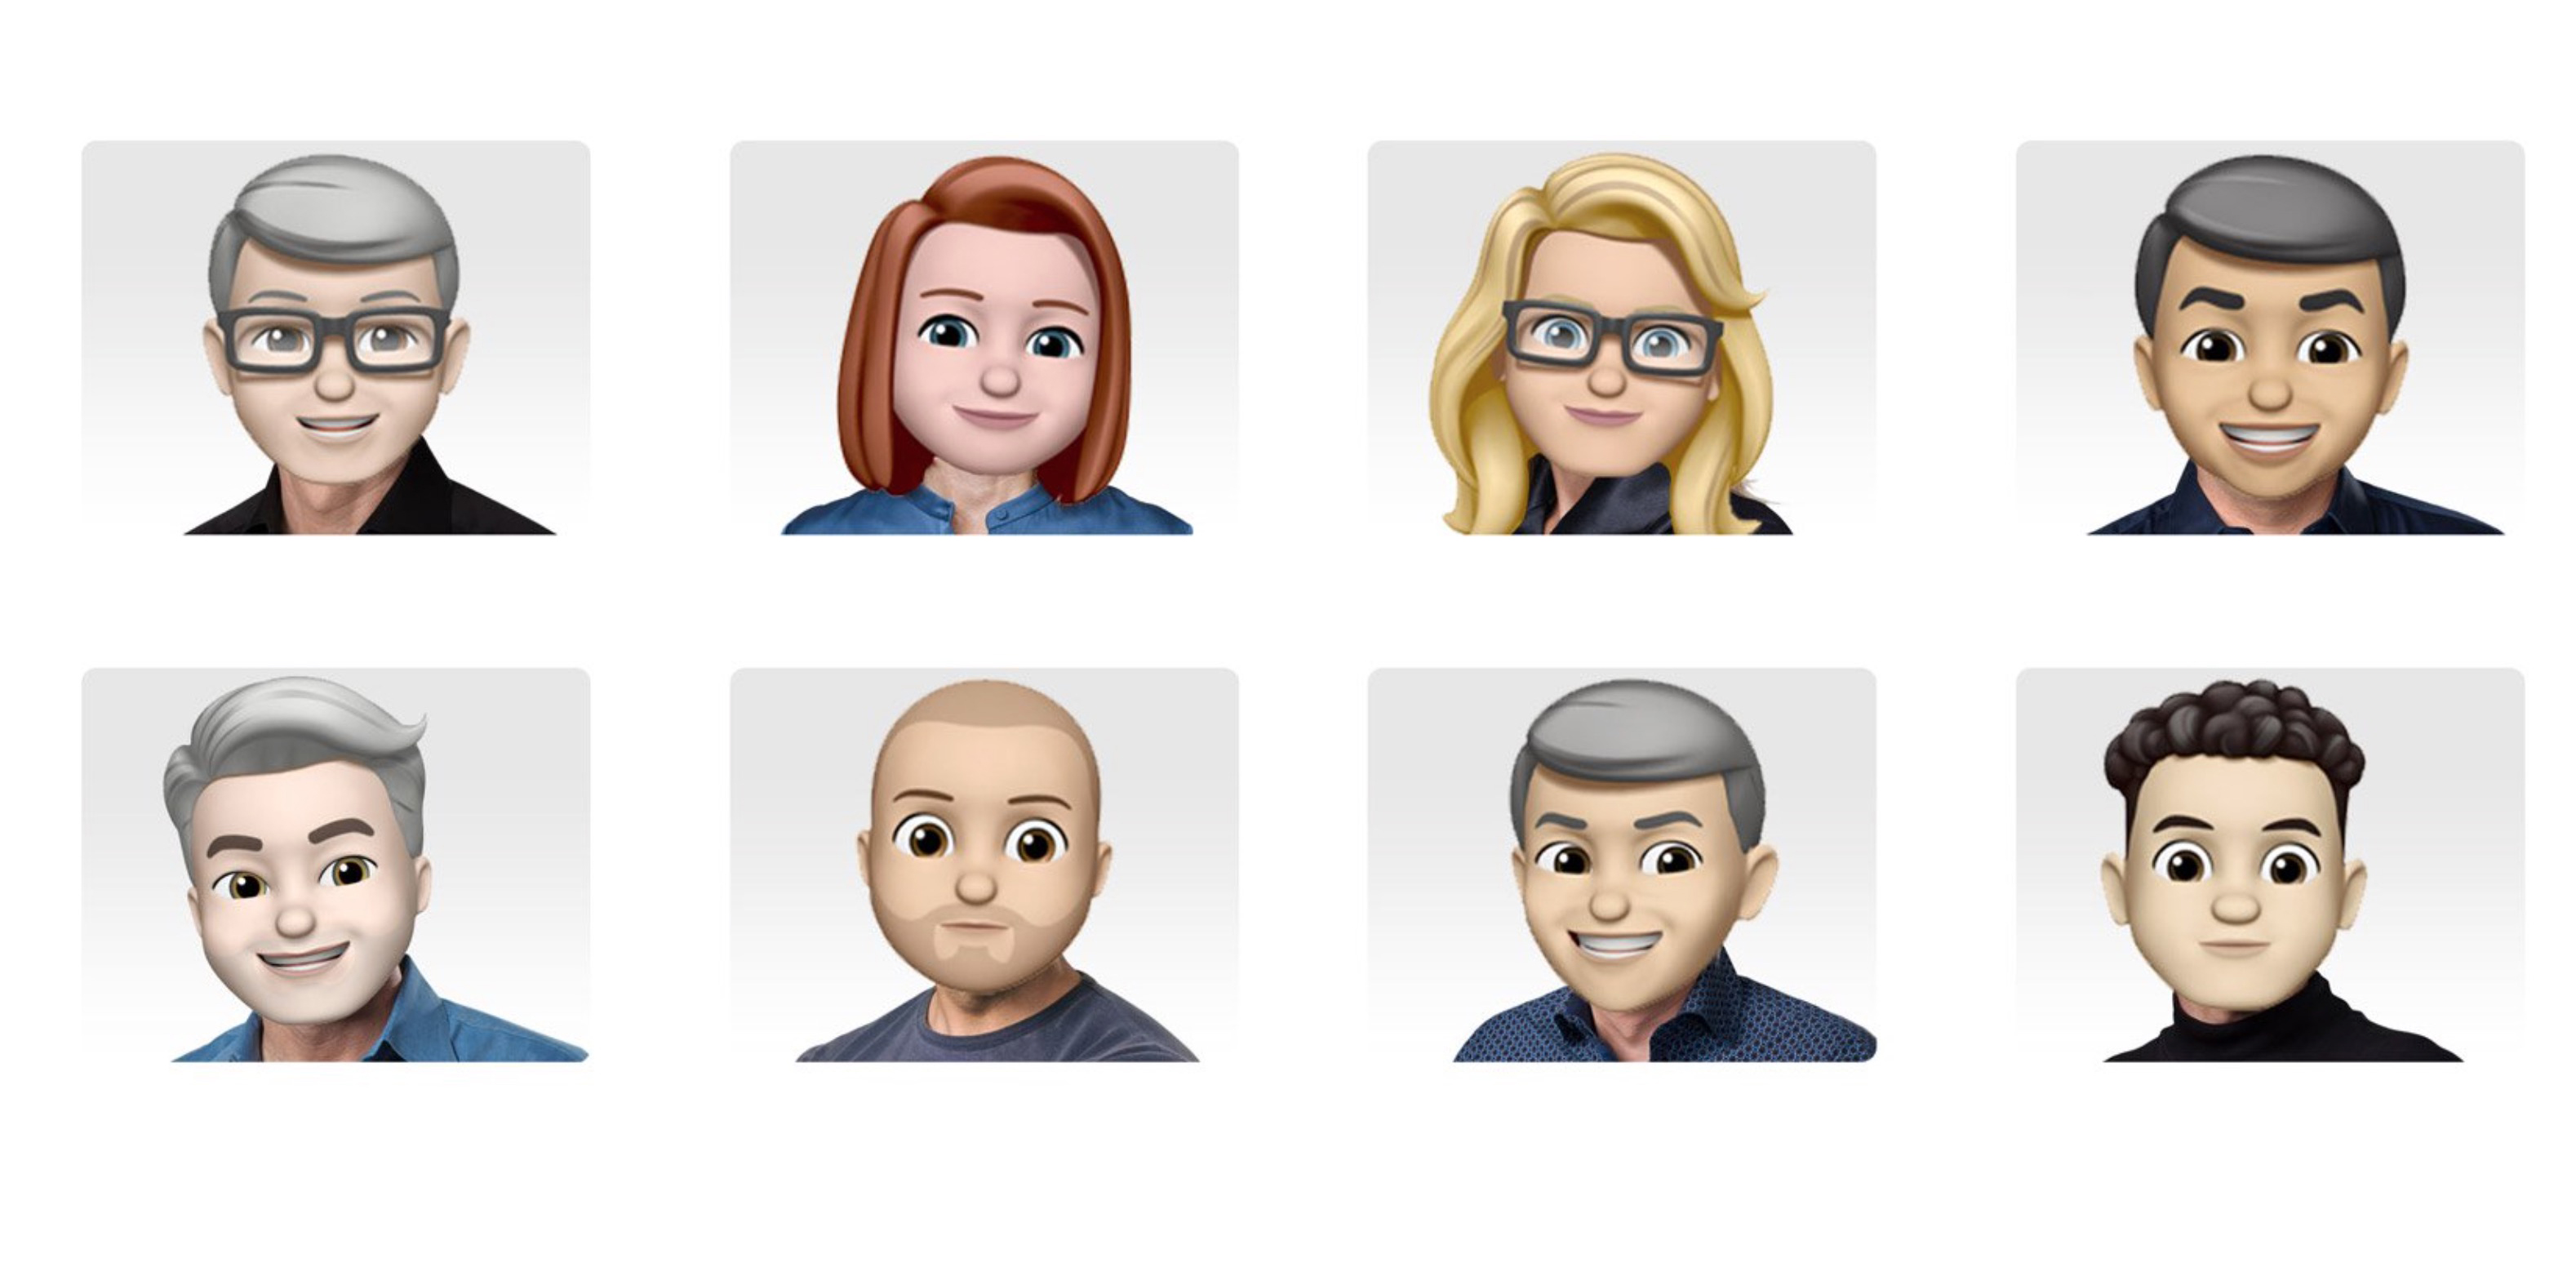 Apple released a set of senior management emojis to mark World Emoji Day